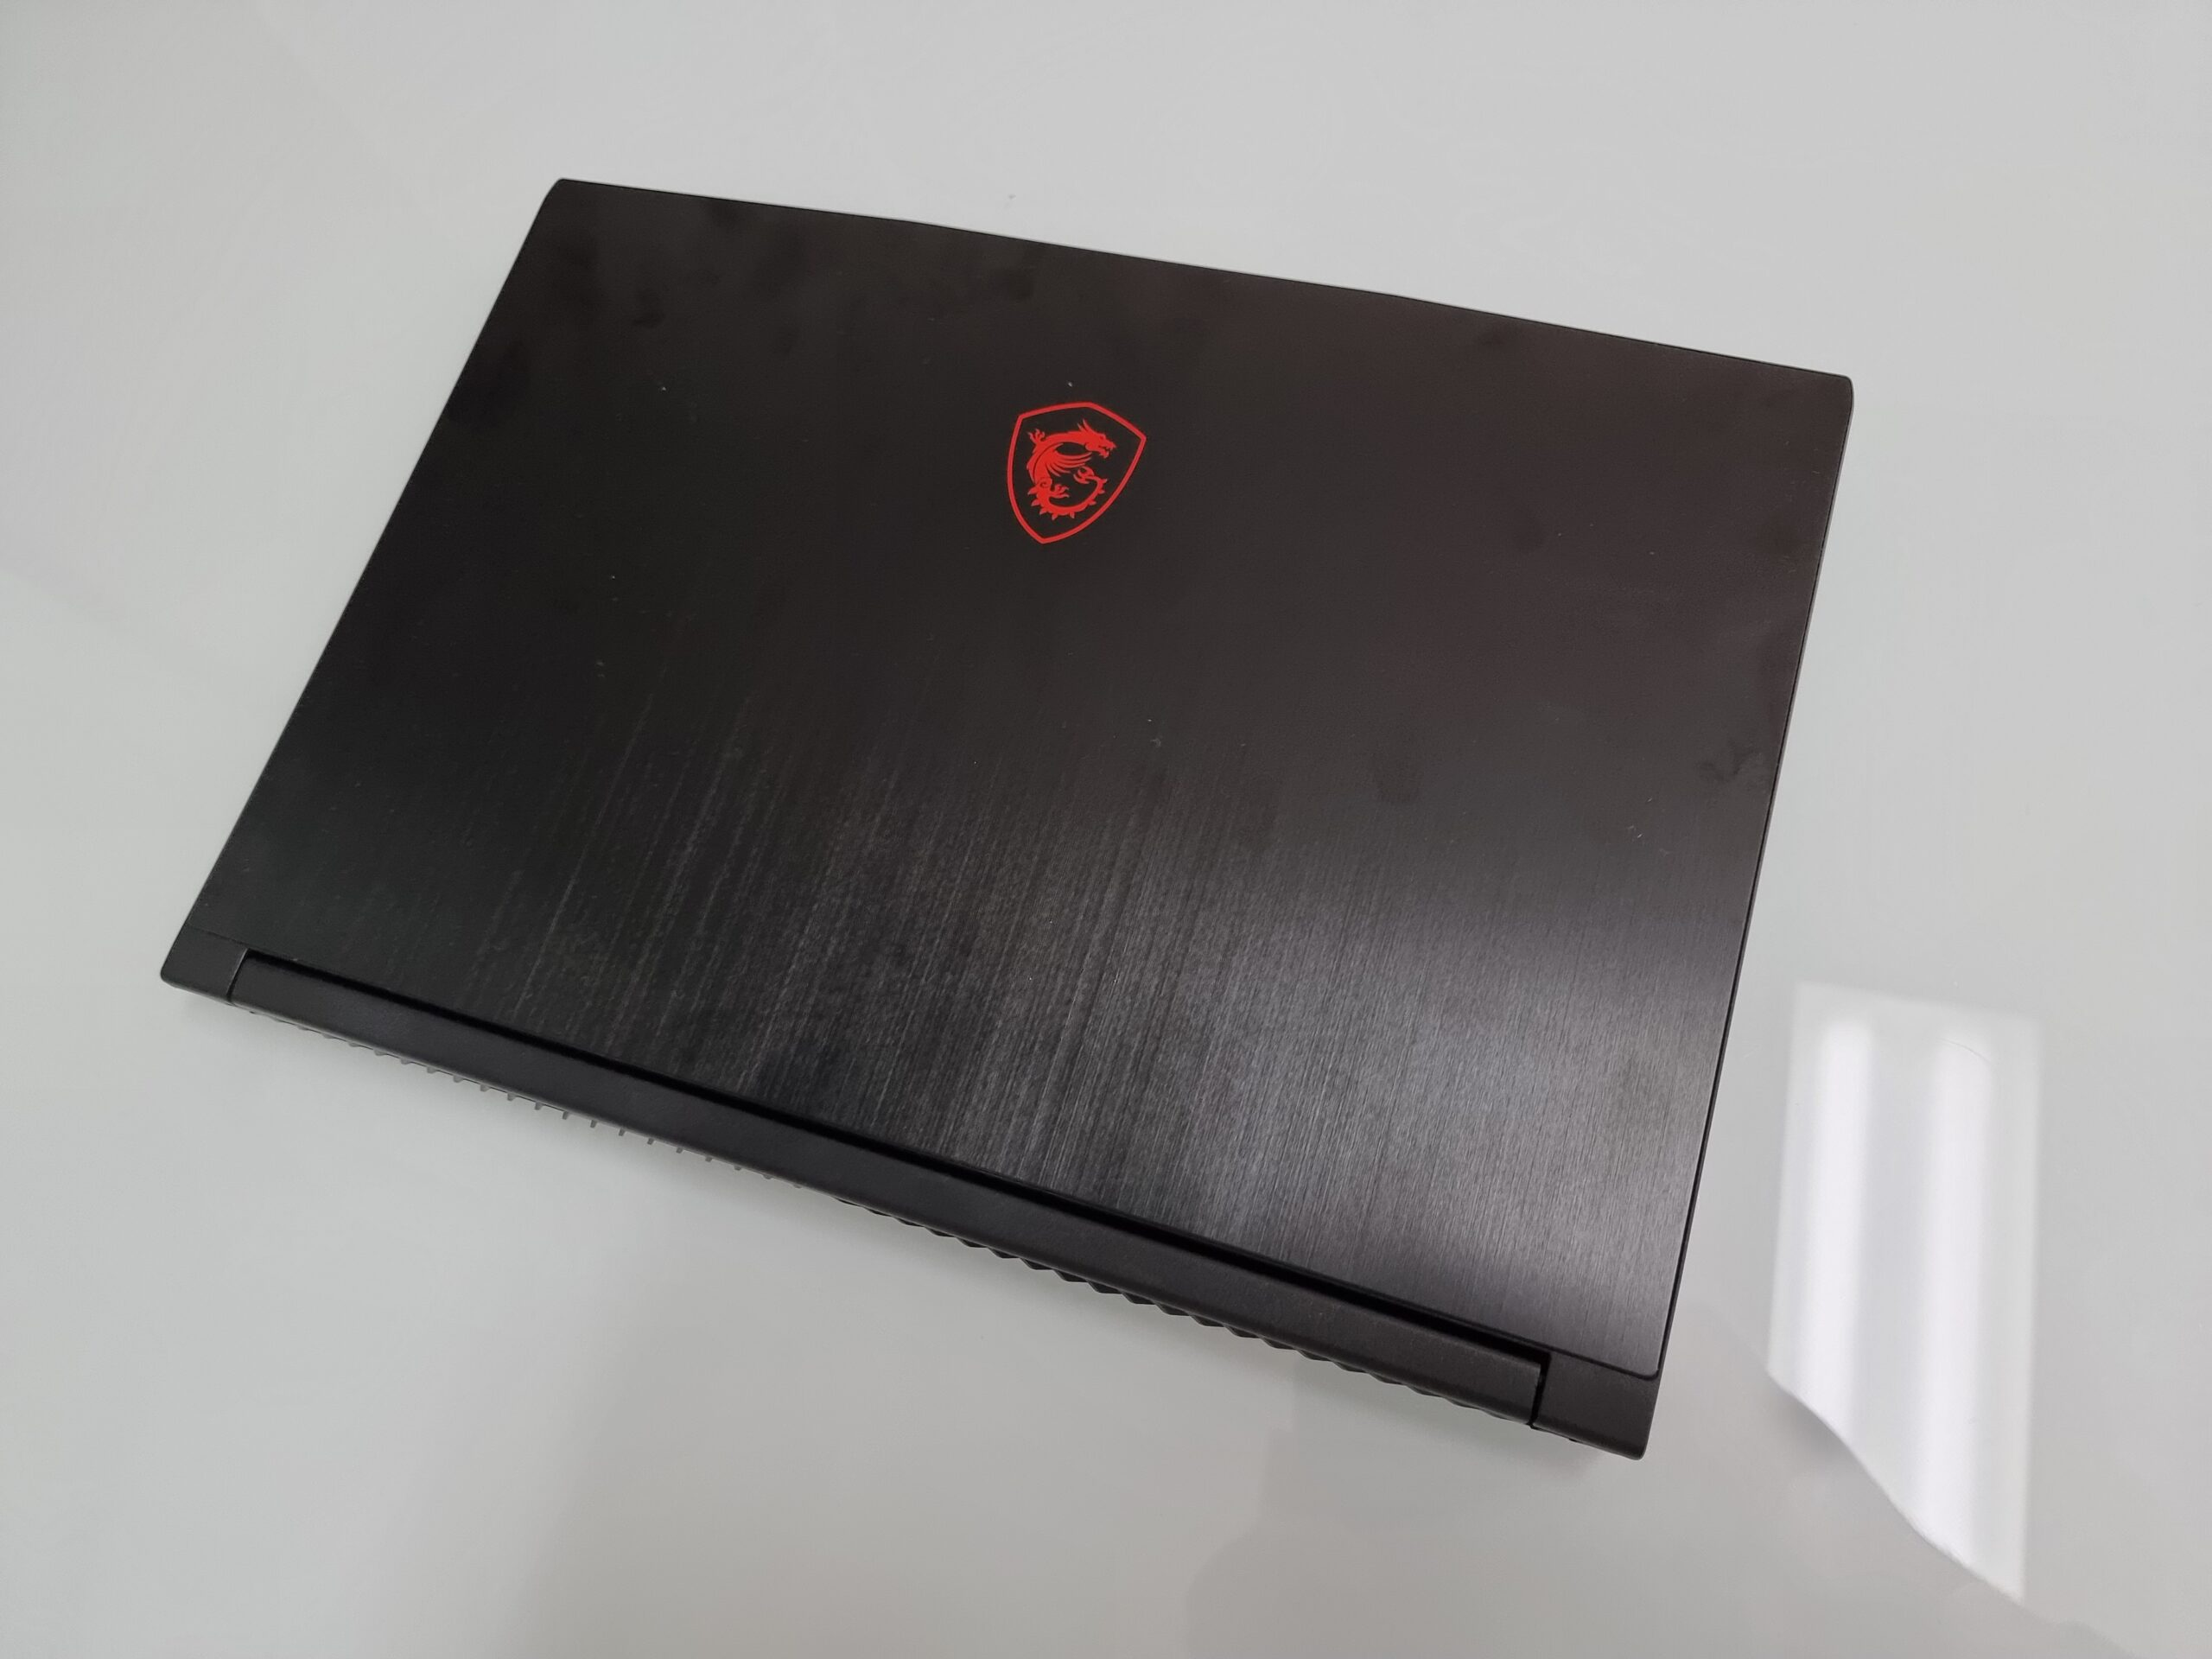 20210325 130700 scaled REVIEW: MSI GF65 Thin 10UE   Portable Performer